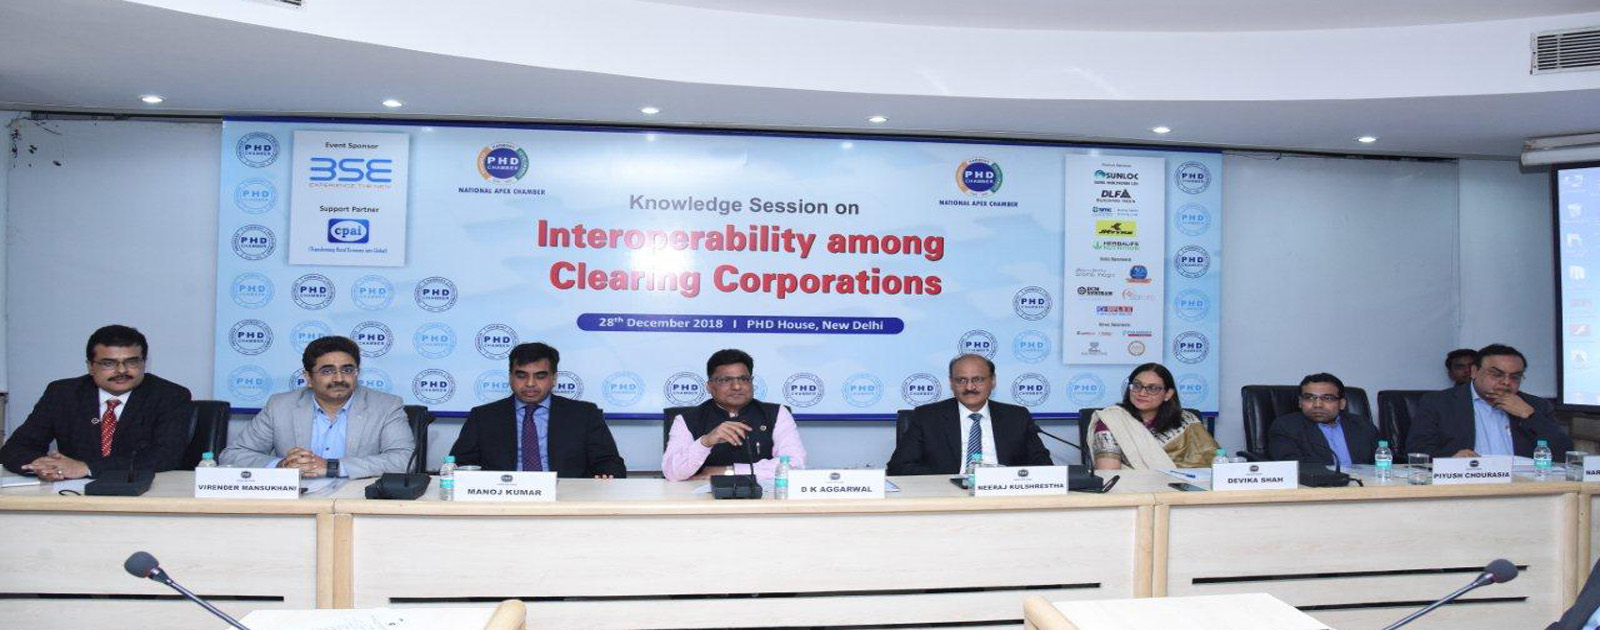 Knowledge Session on Interoperability among Clearing Corporations